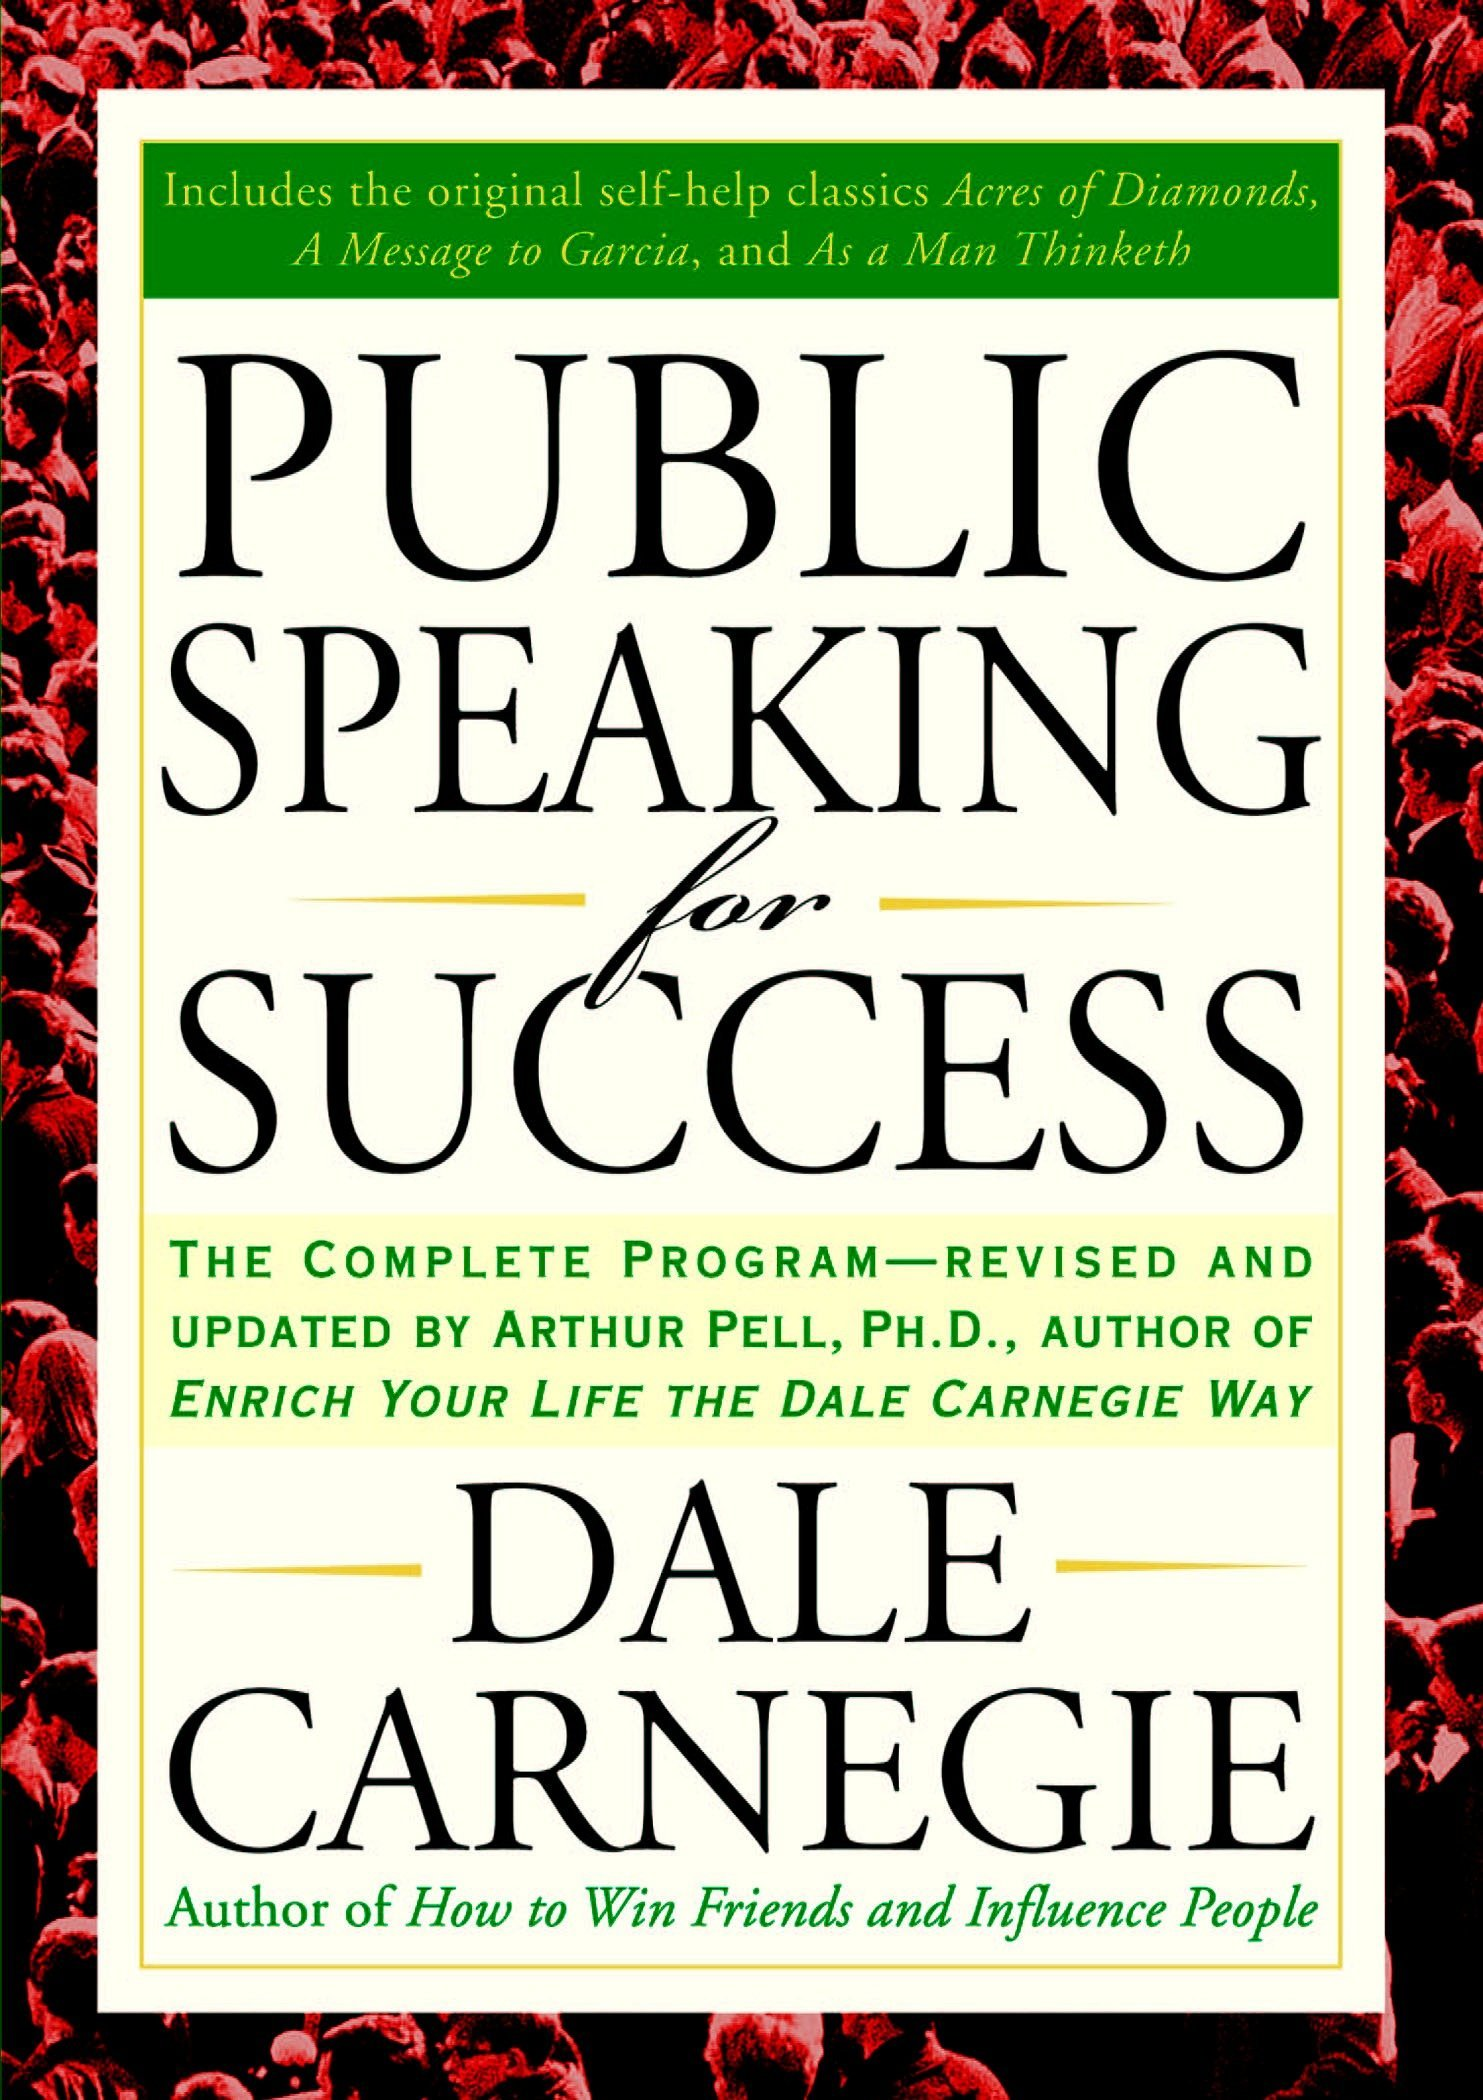 Public Speaking for Success: The Complete Program, Revised and Updated:  Dale Carnegie: 9781585424924: Amazon.com: Books